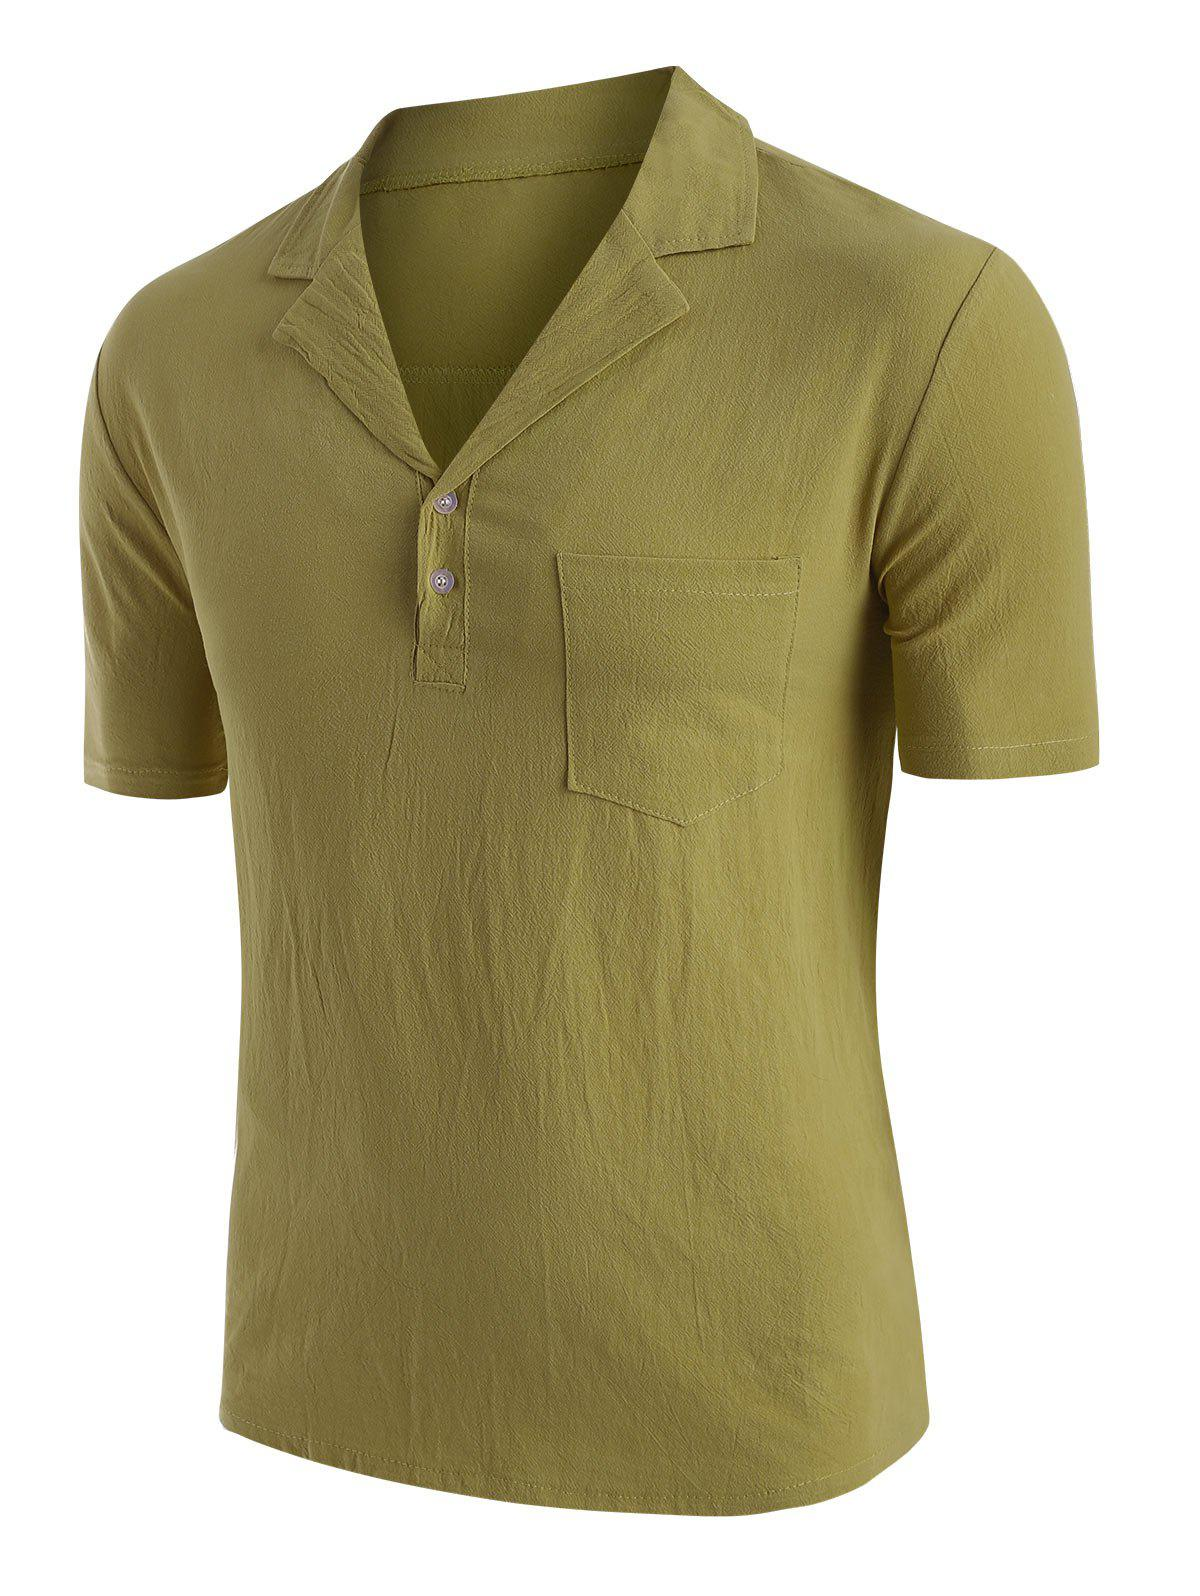 Discount Solid Color Chest Pocket T-shirt